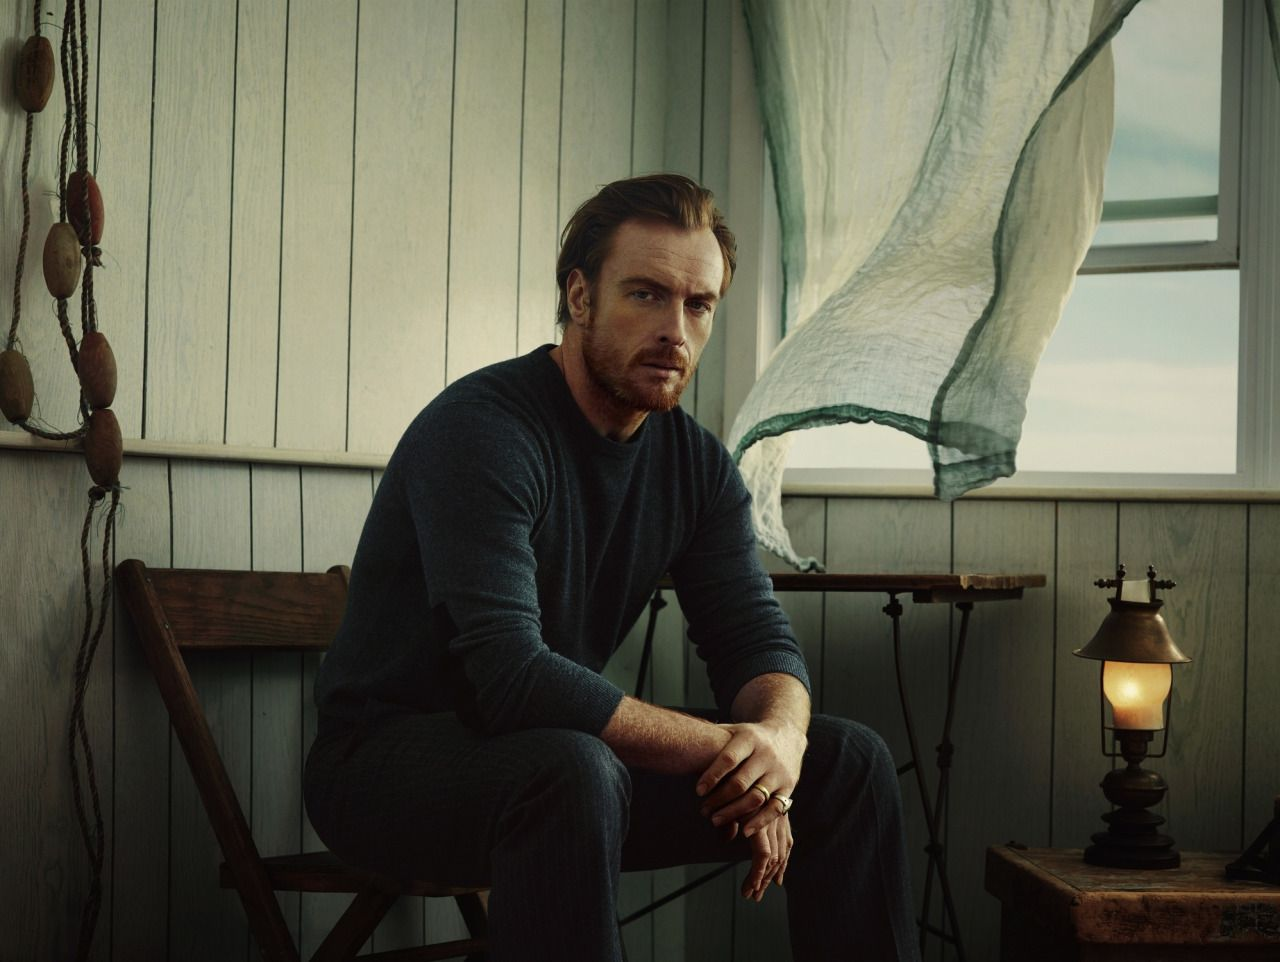 photo Toby Stephens (born 1969)